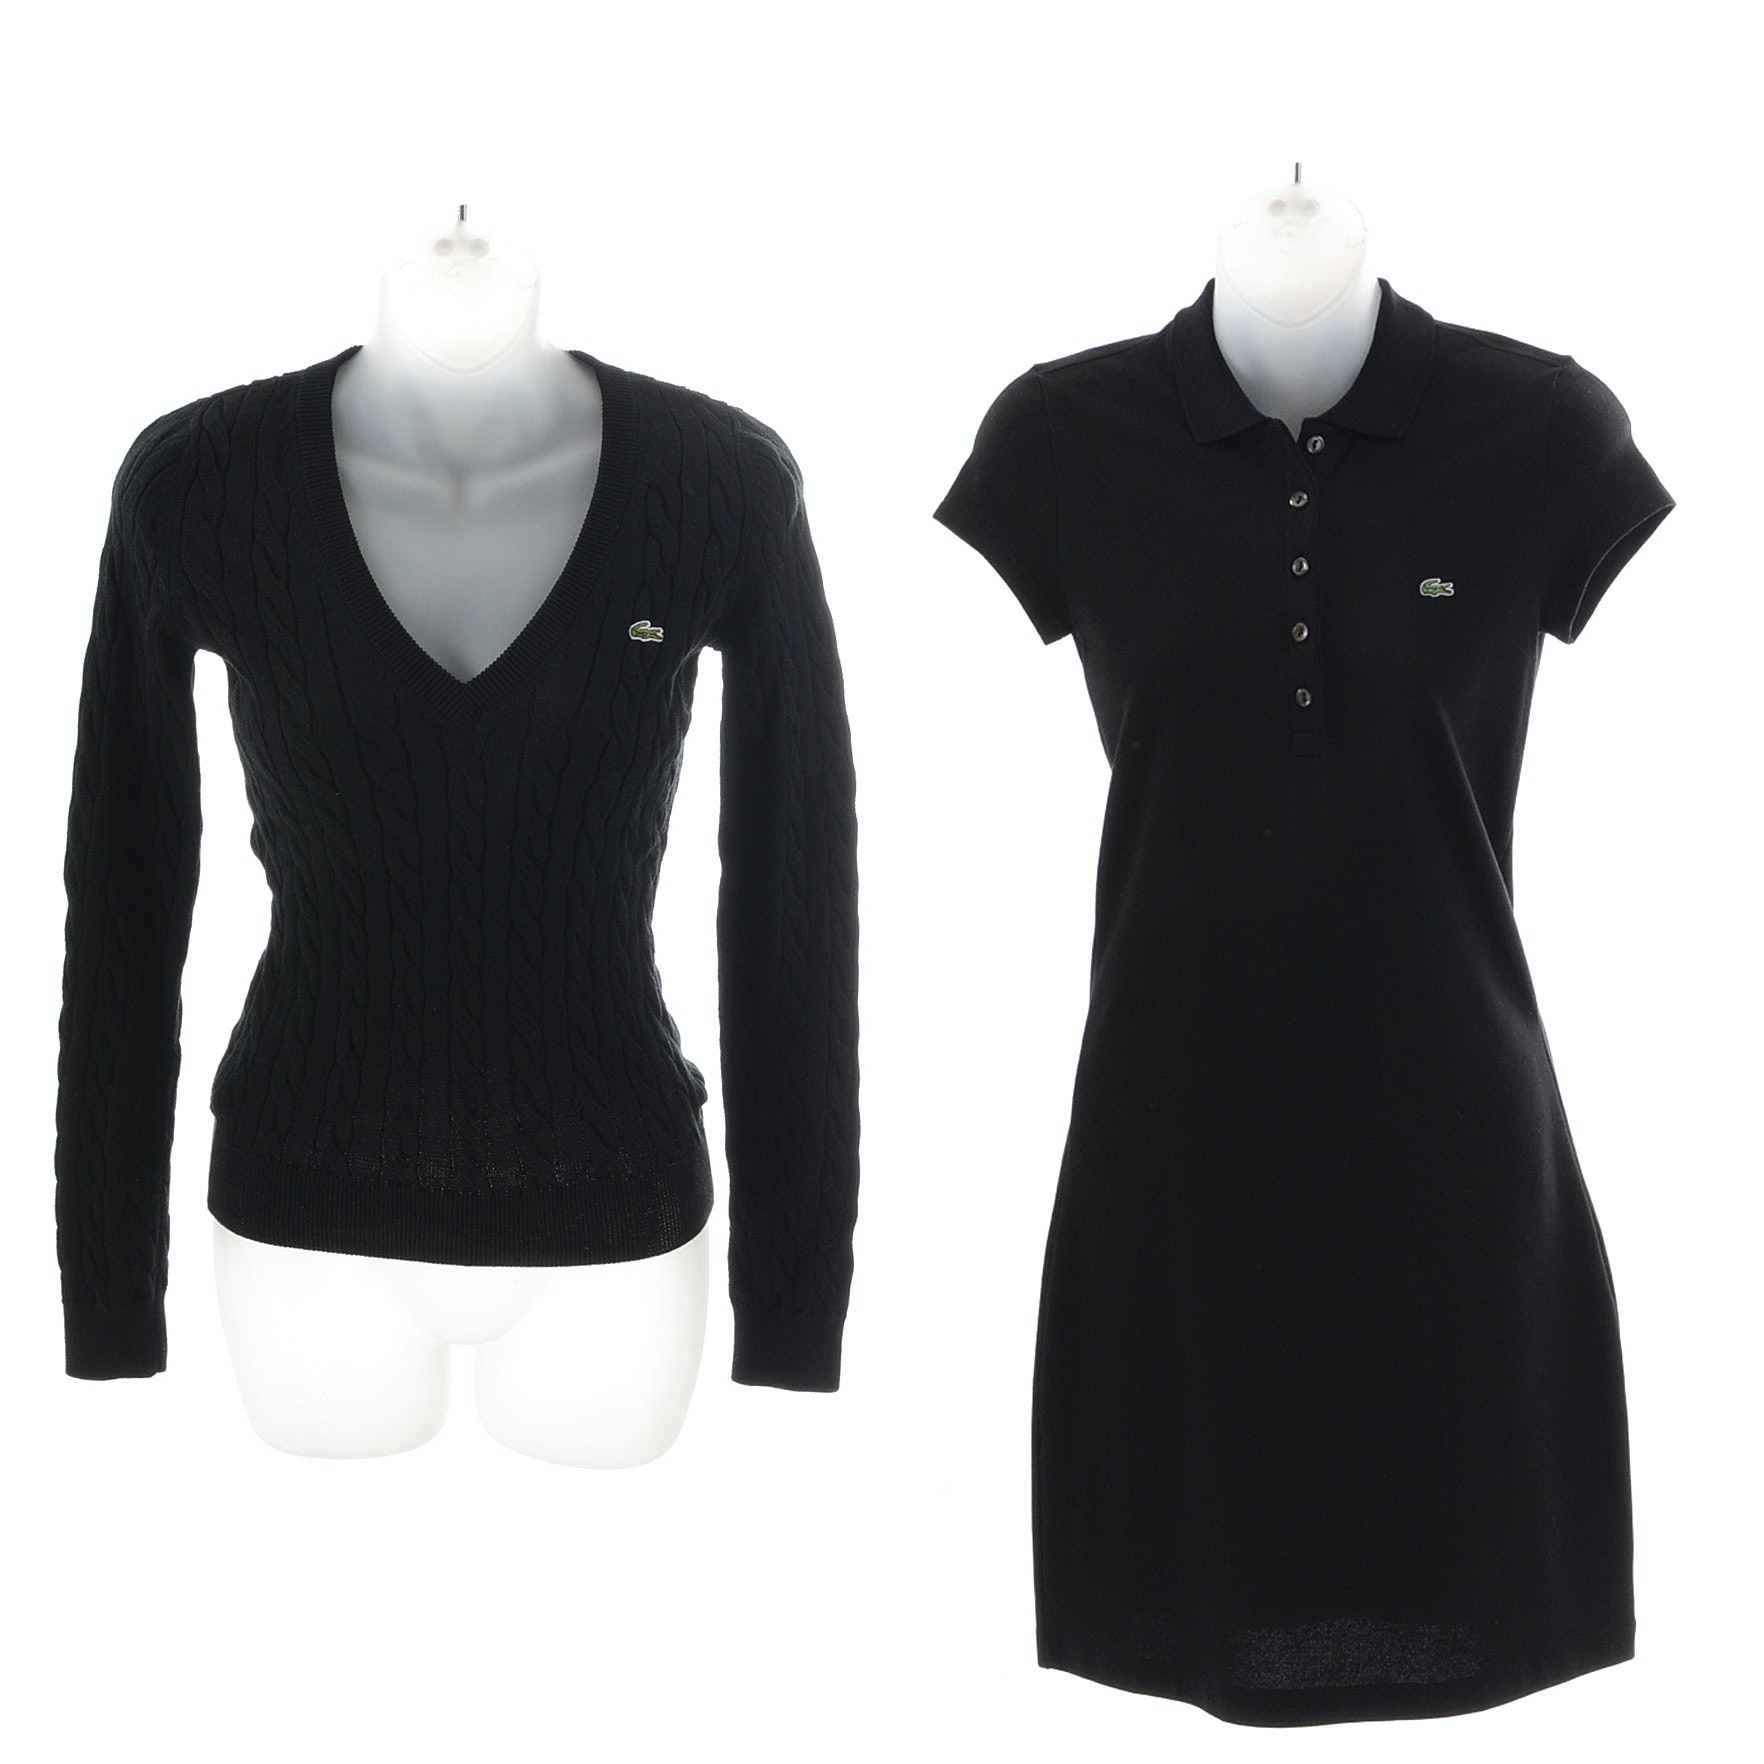 Lacoste Dress and Sweater